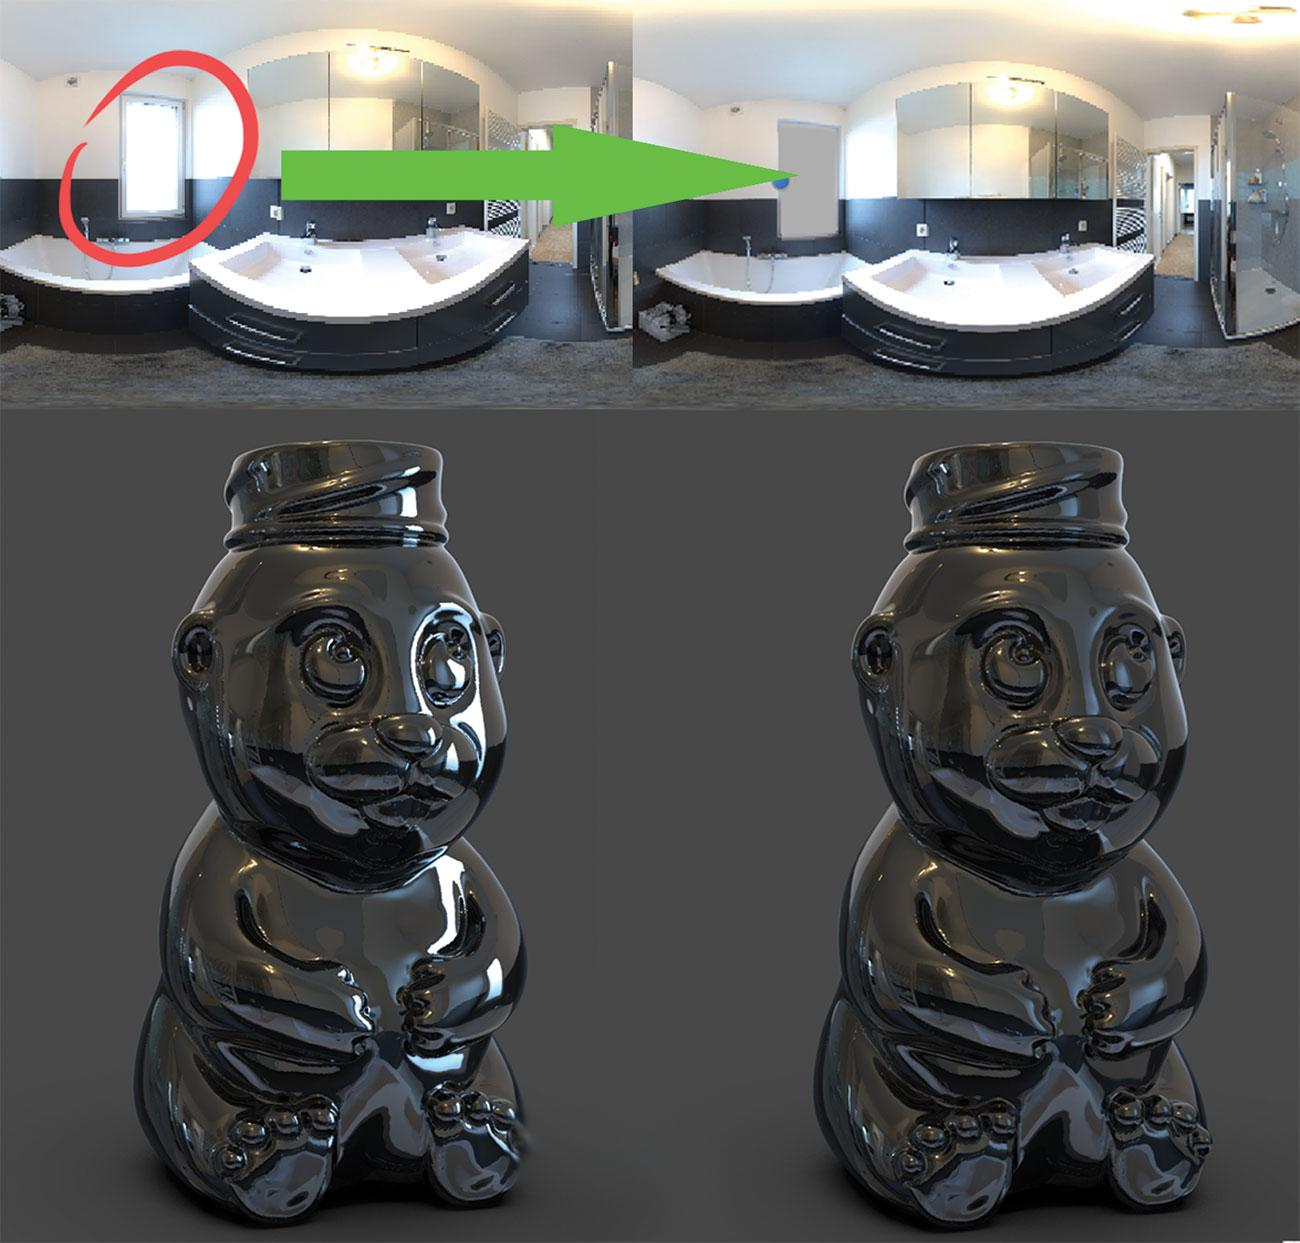 KeyShot rendering tips: Block HDRI hotspots